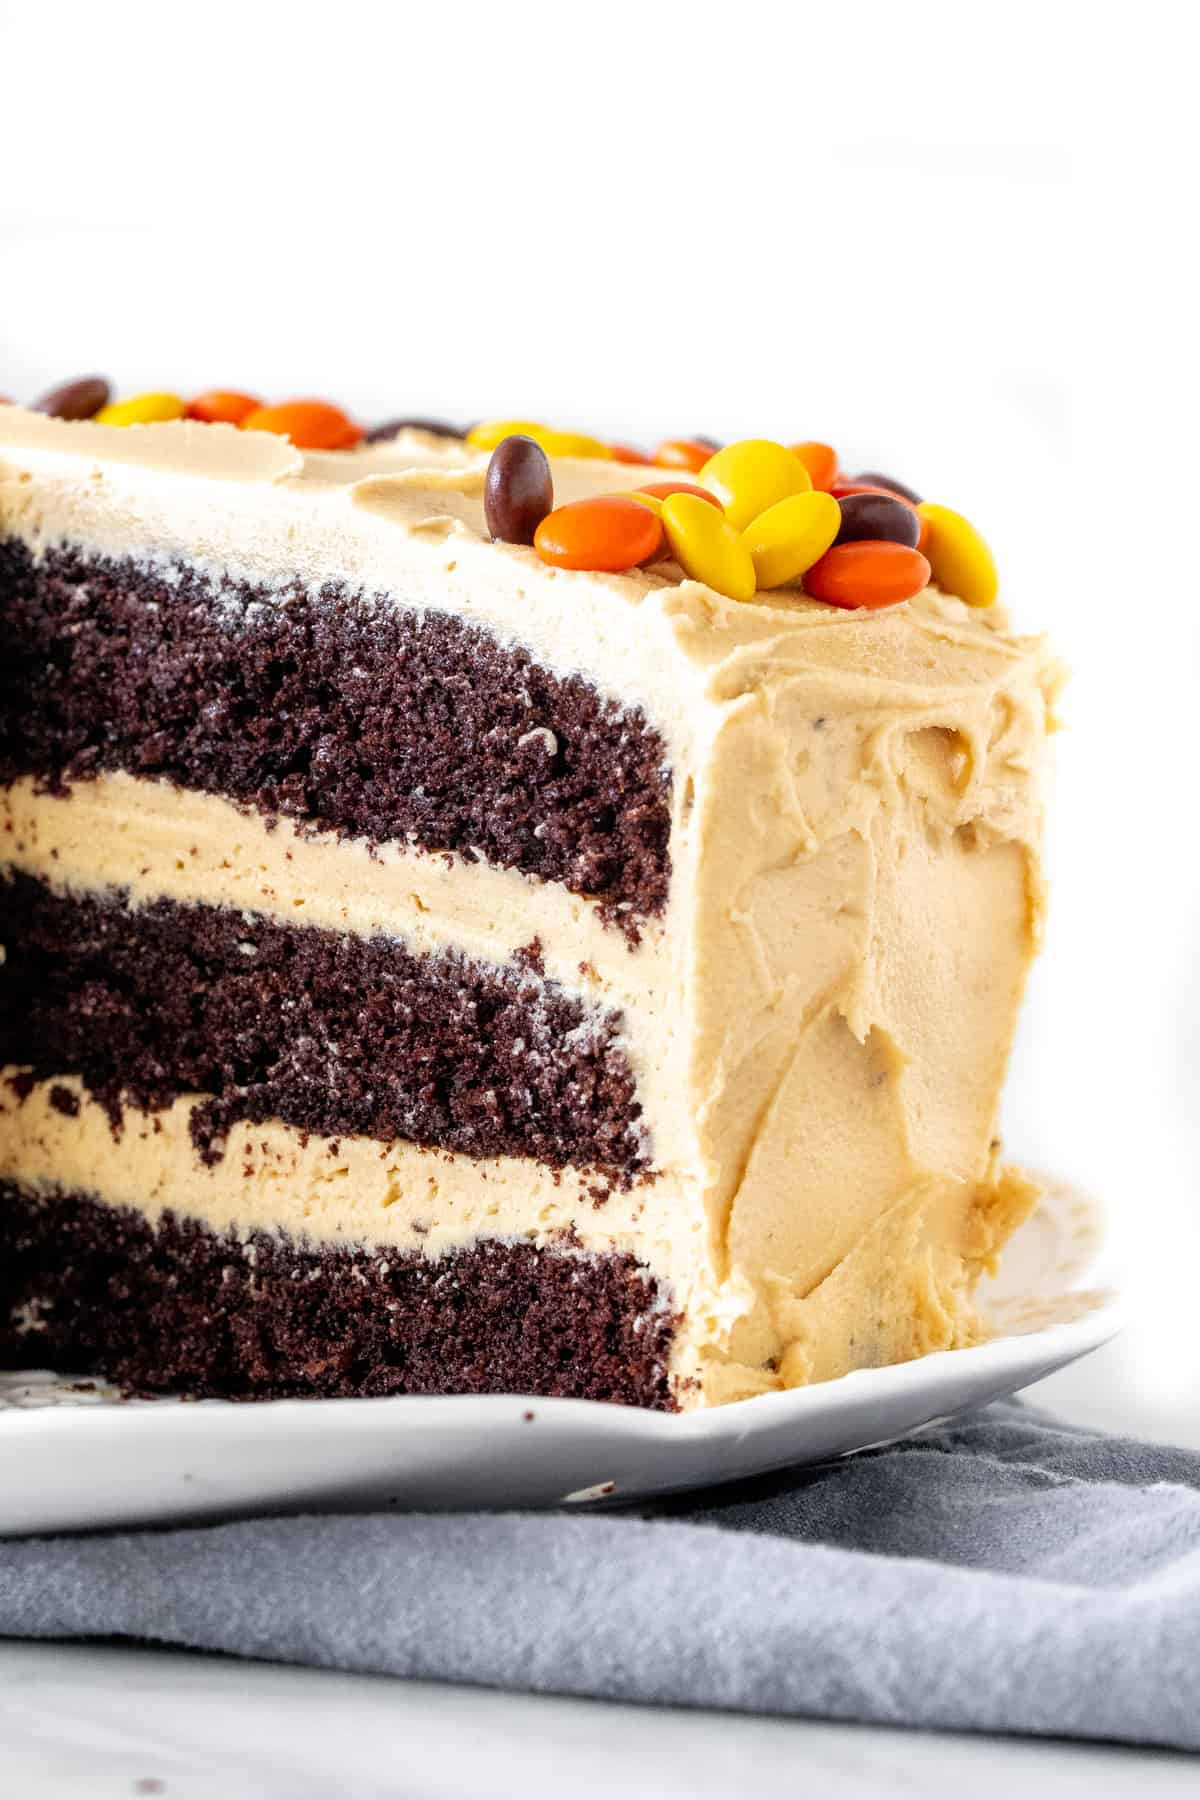 A 3-layer chocolate cake with peanut butter frosting.